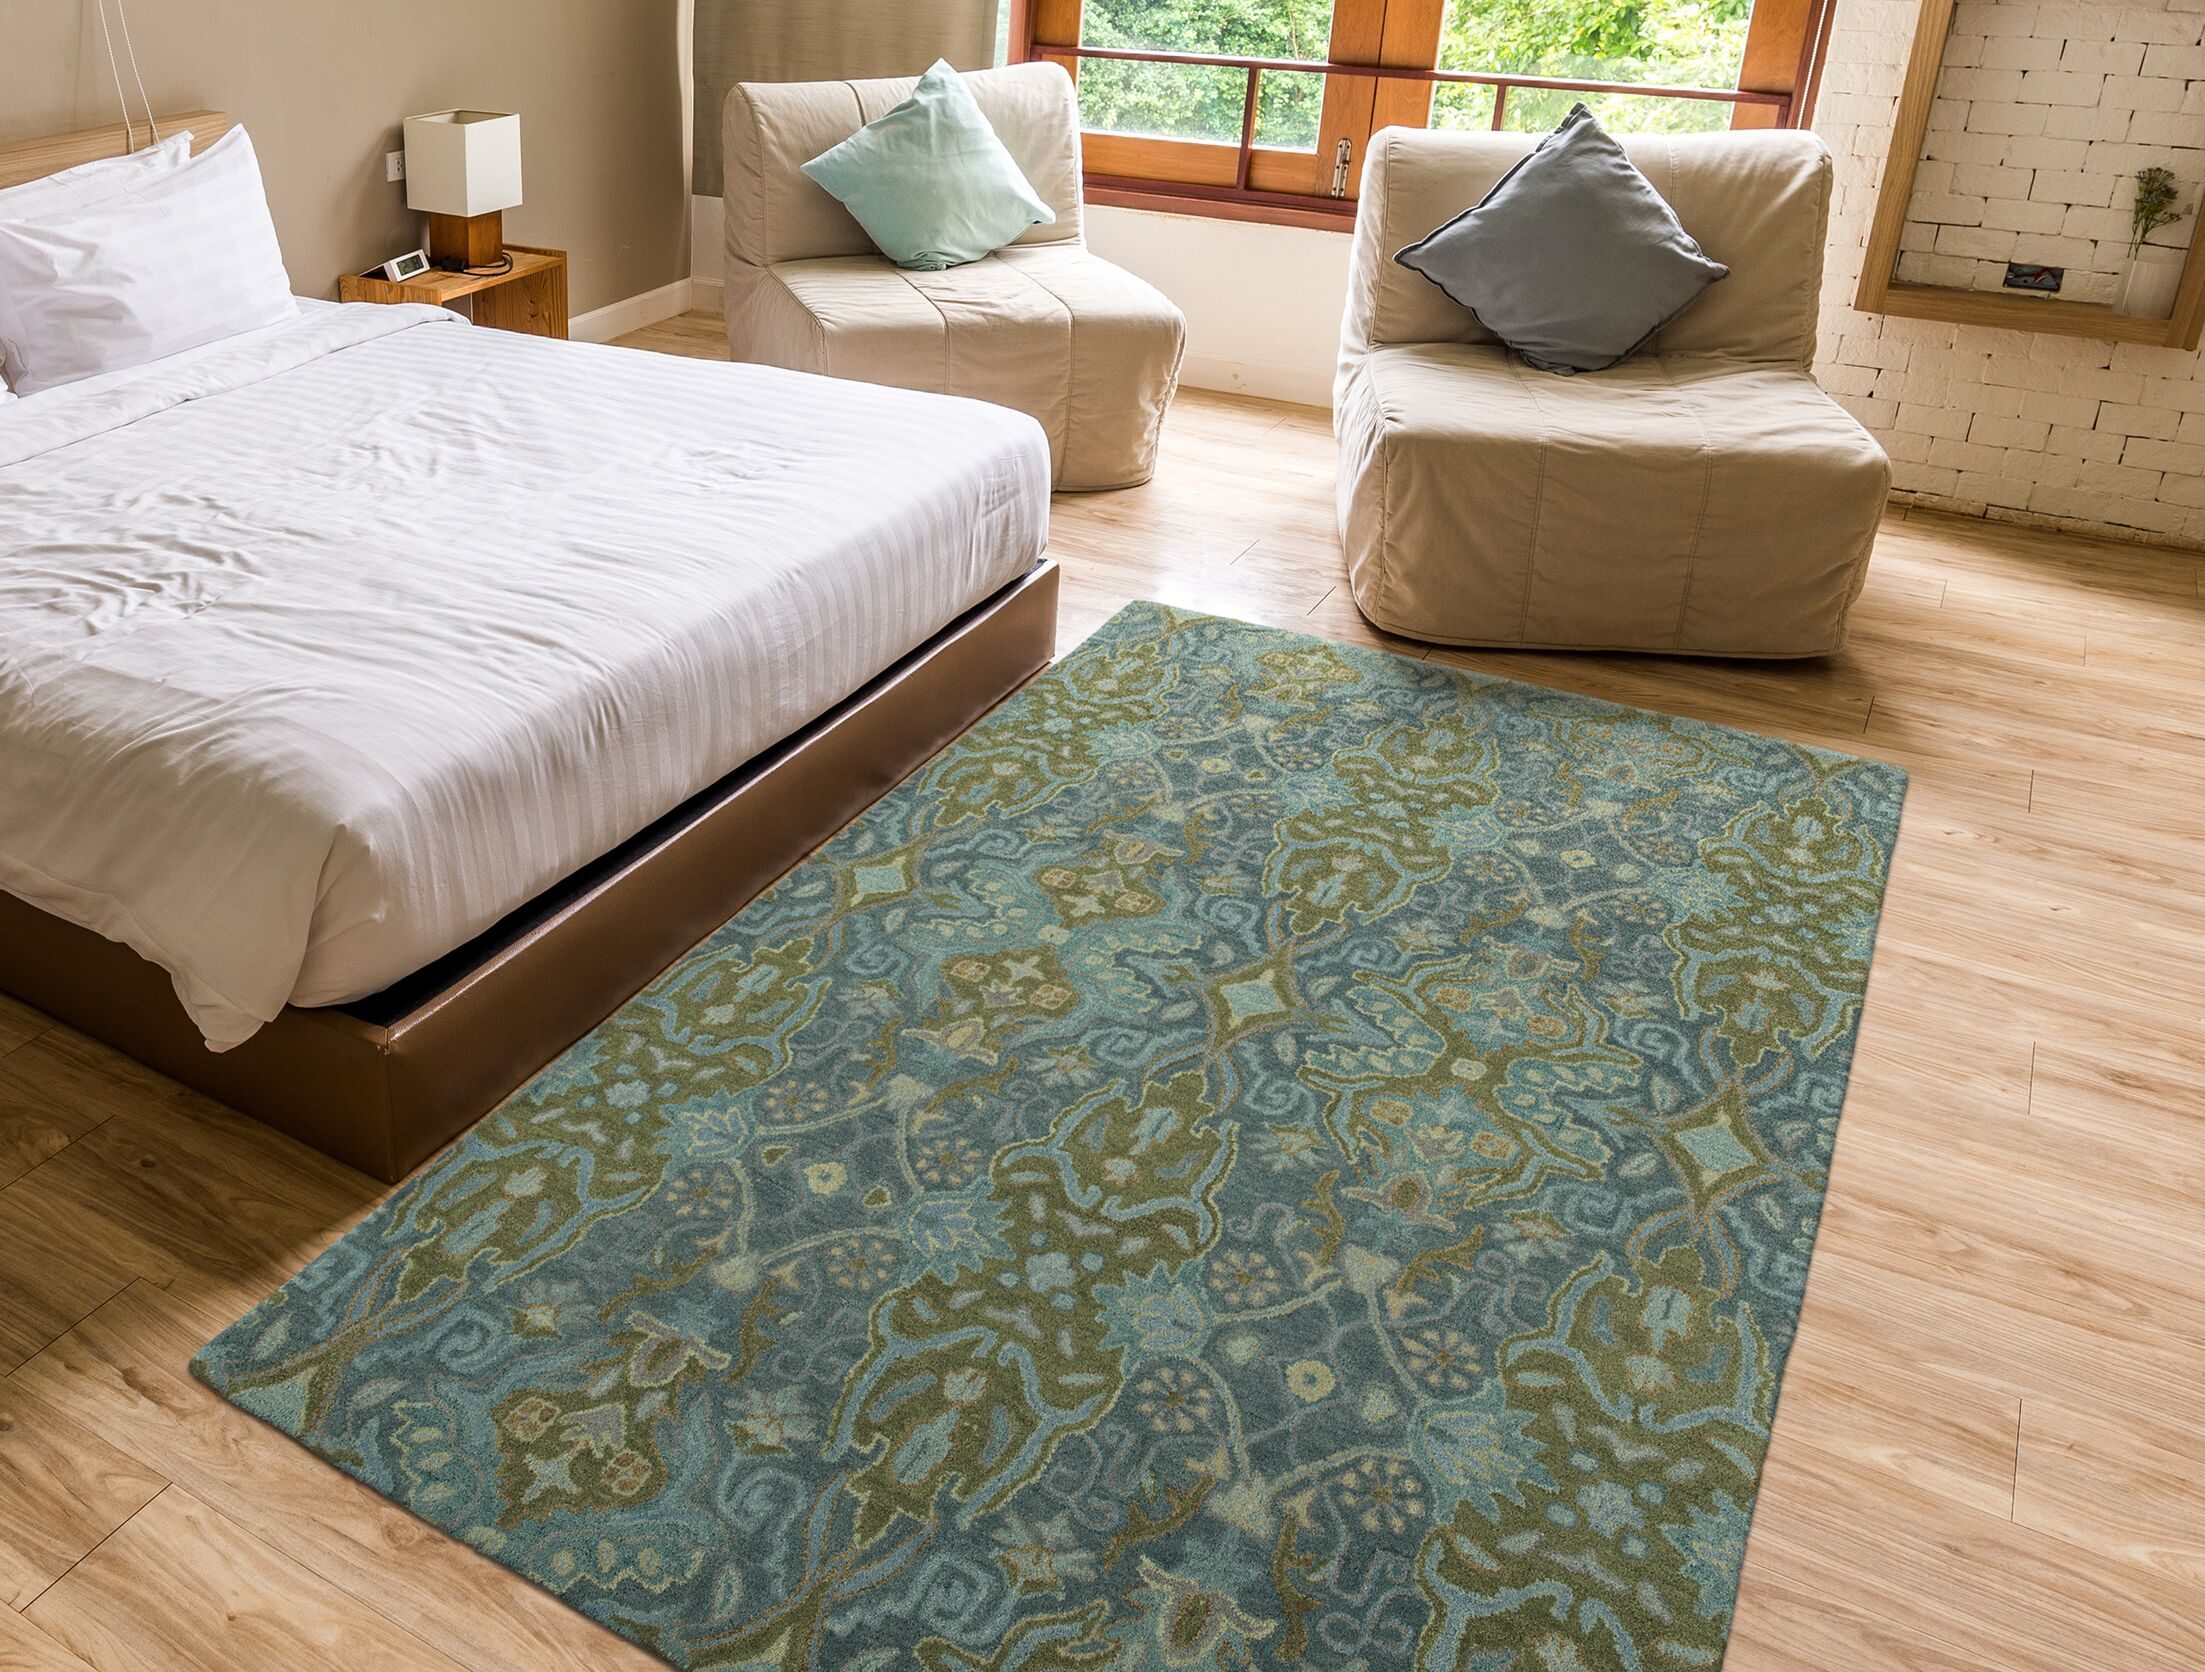 Burcott Hand-Tufted Wool Peacock/Light Brown Area Rug Rug Size: Rectangle 5' x 7'9